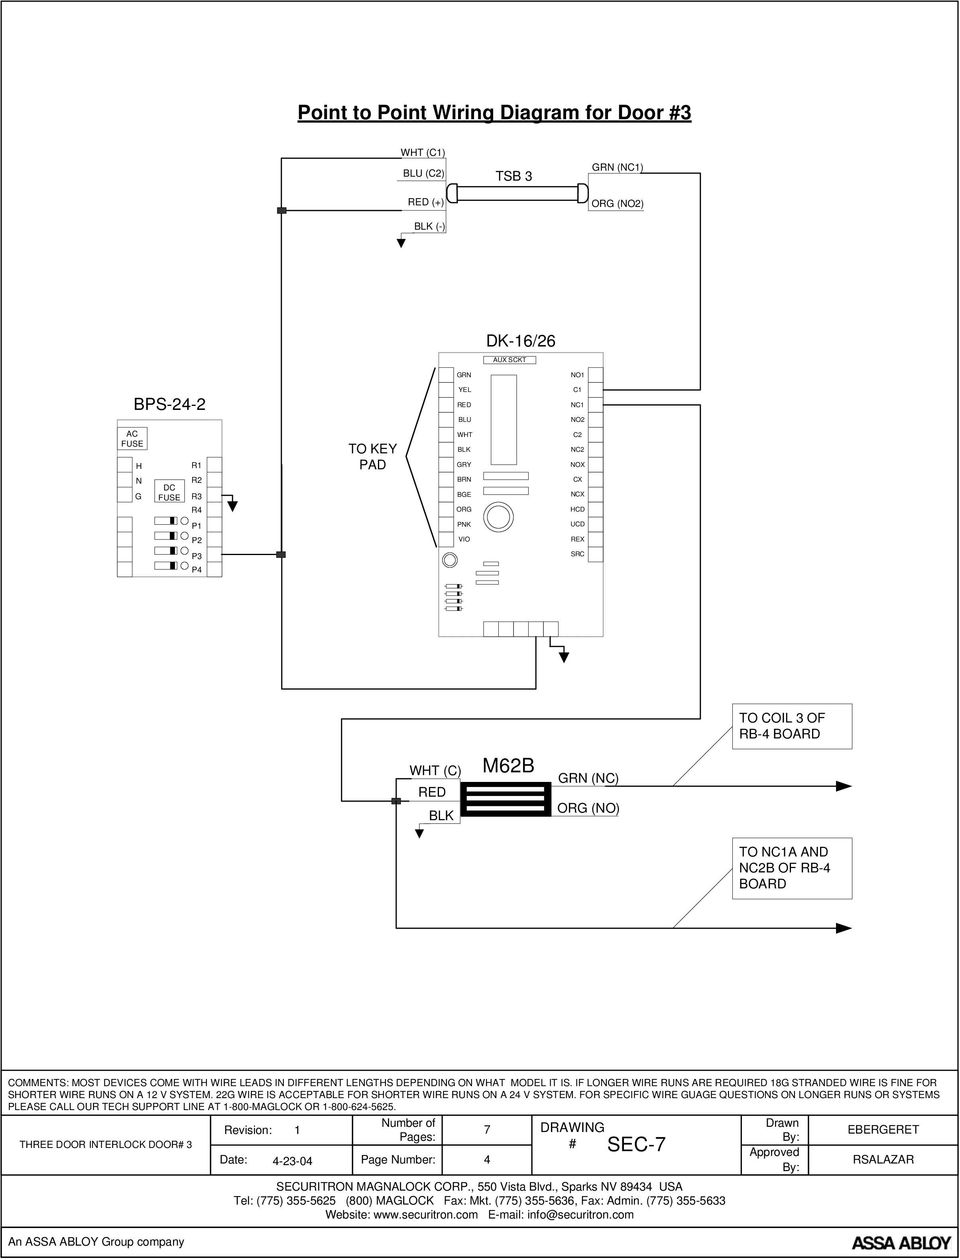 medium resolution of to 1a ad 2b of rb 4 board commets most devices come wit wire